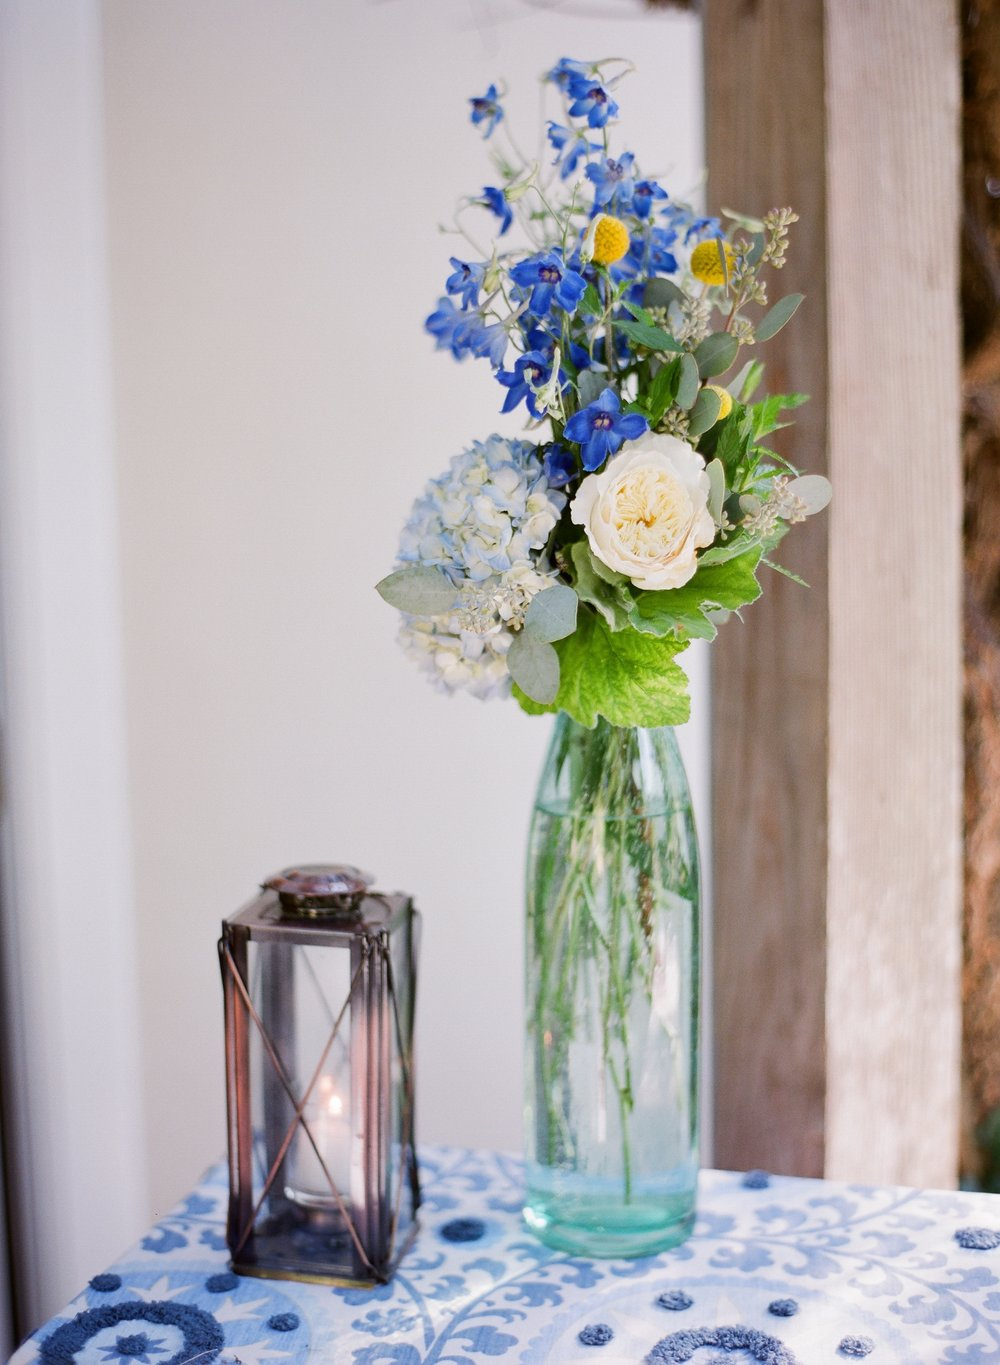 santabarbarawedding.com | Four Seasons Biltmore Wedding in Santa Barbara | Magnolia Event Design | Jose Villa